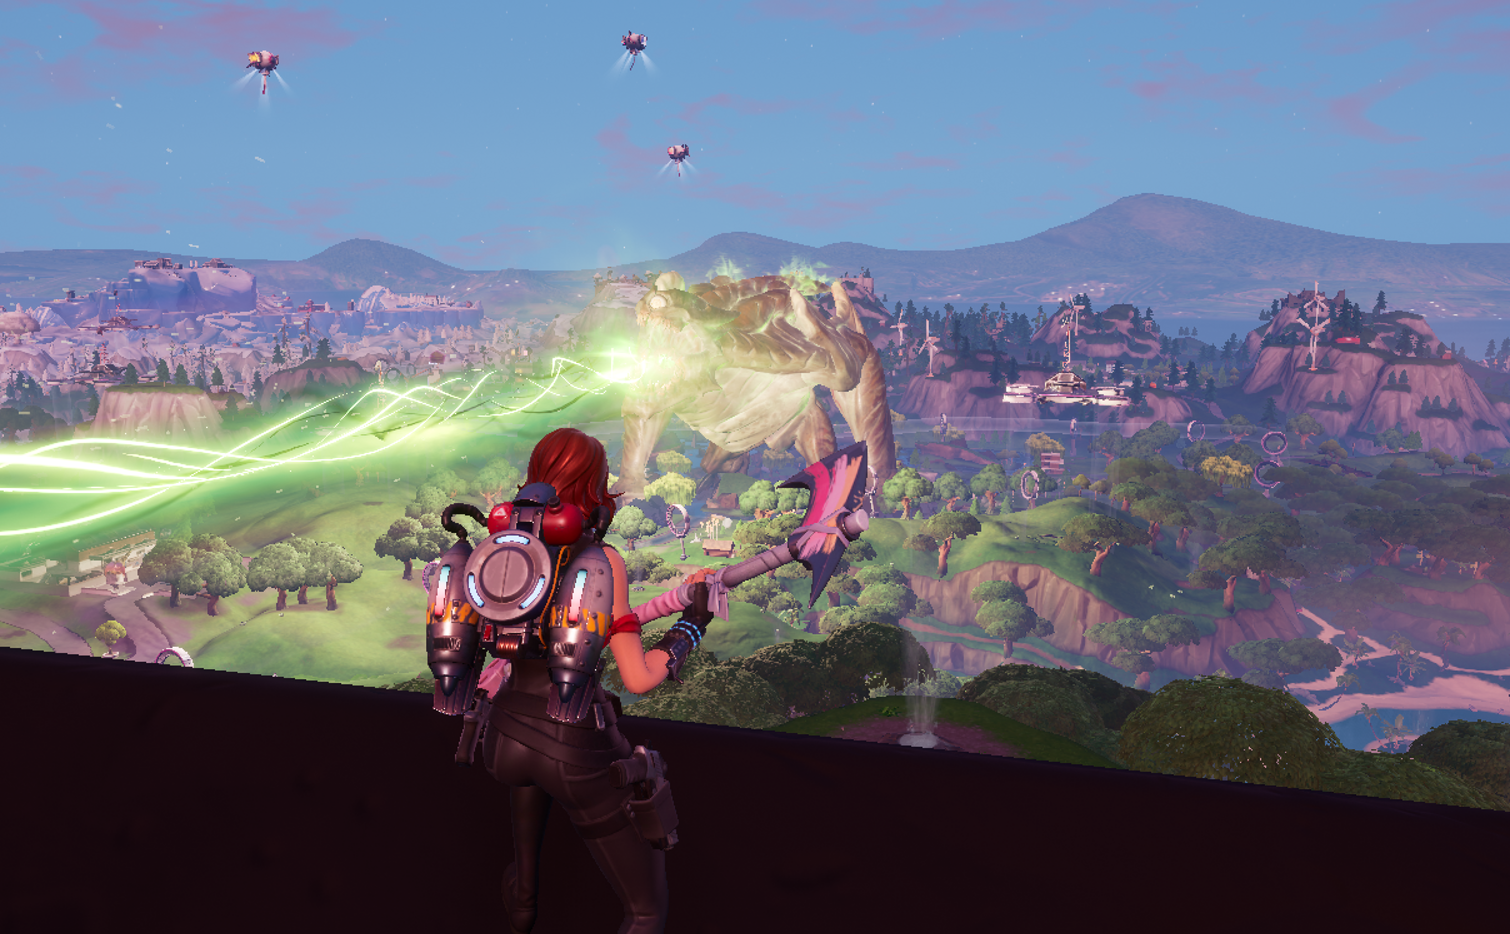 Fortnite's latest end-of-season event was a giant mecha vs. monster fight